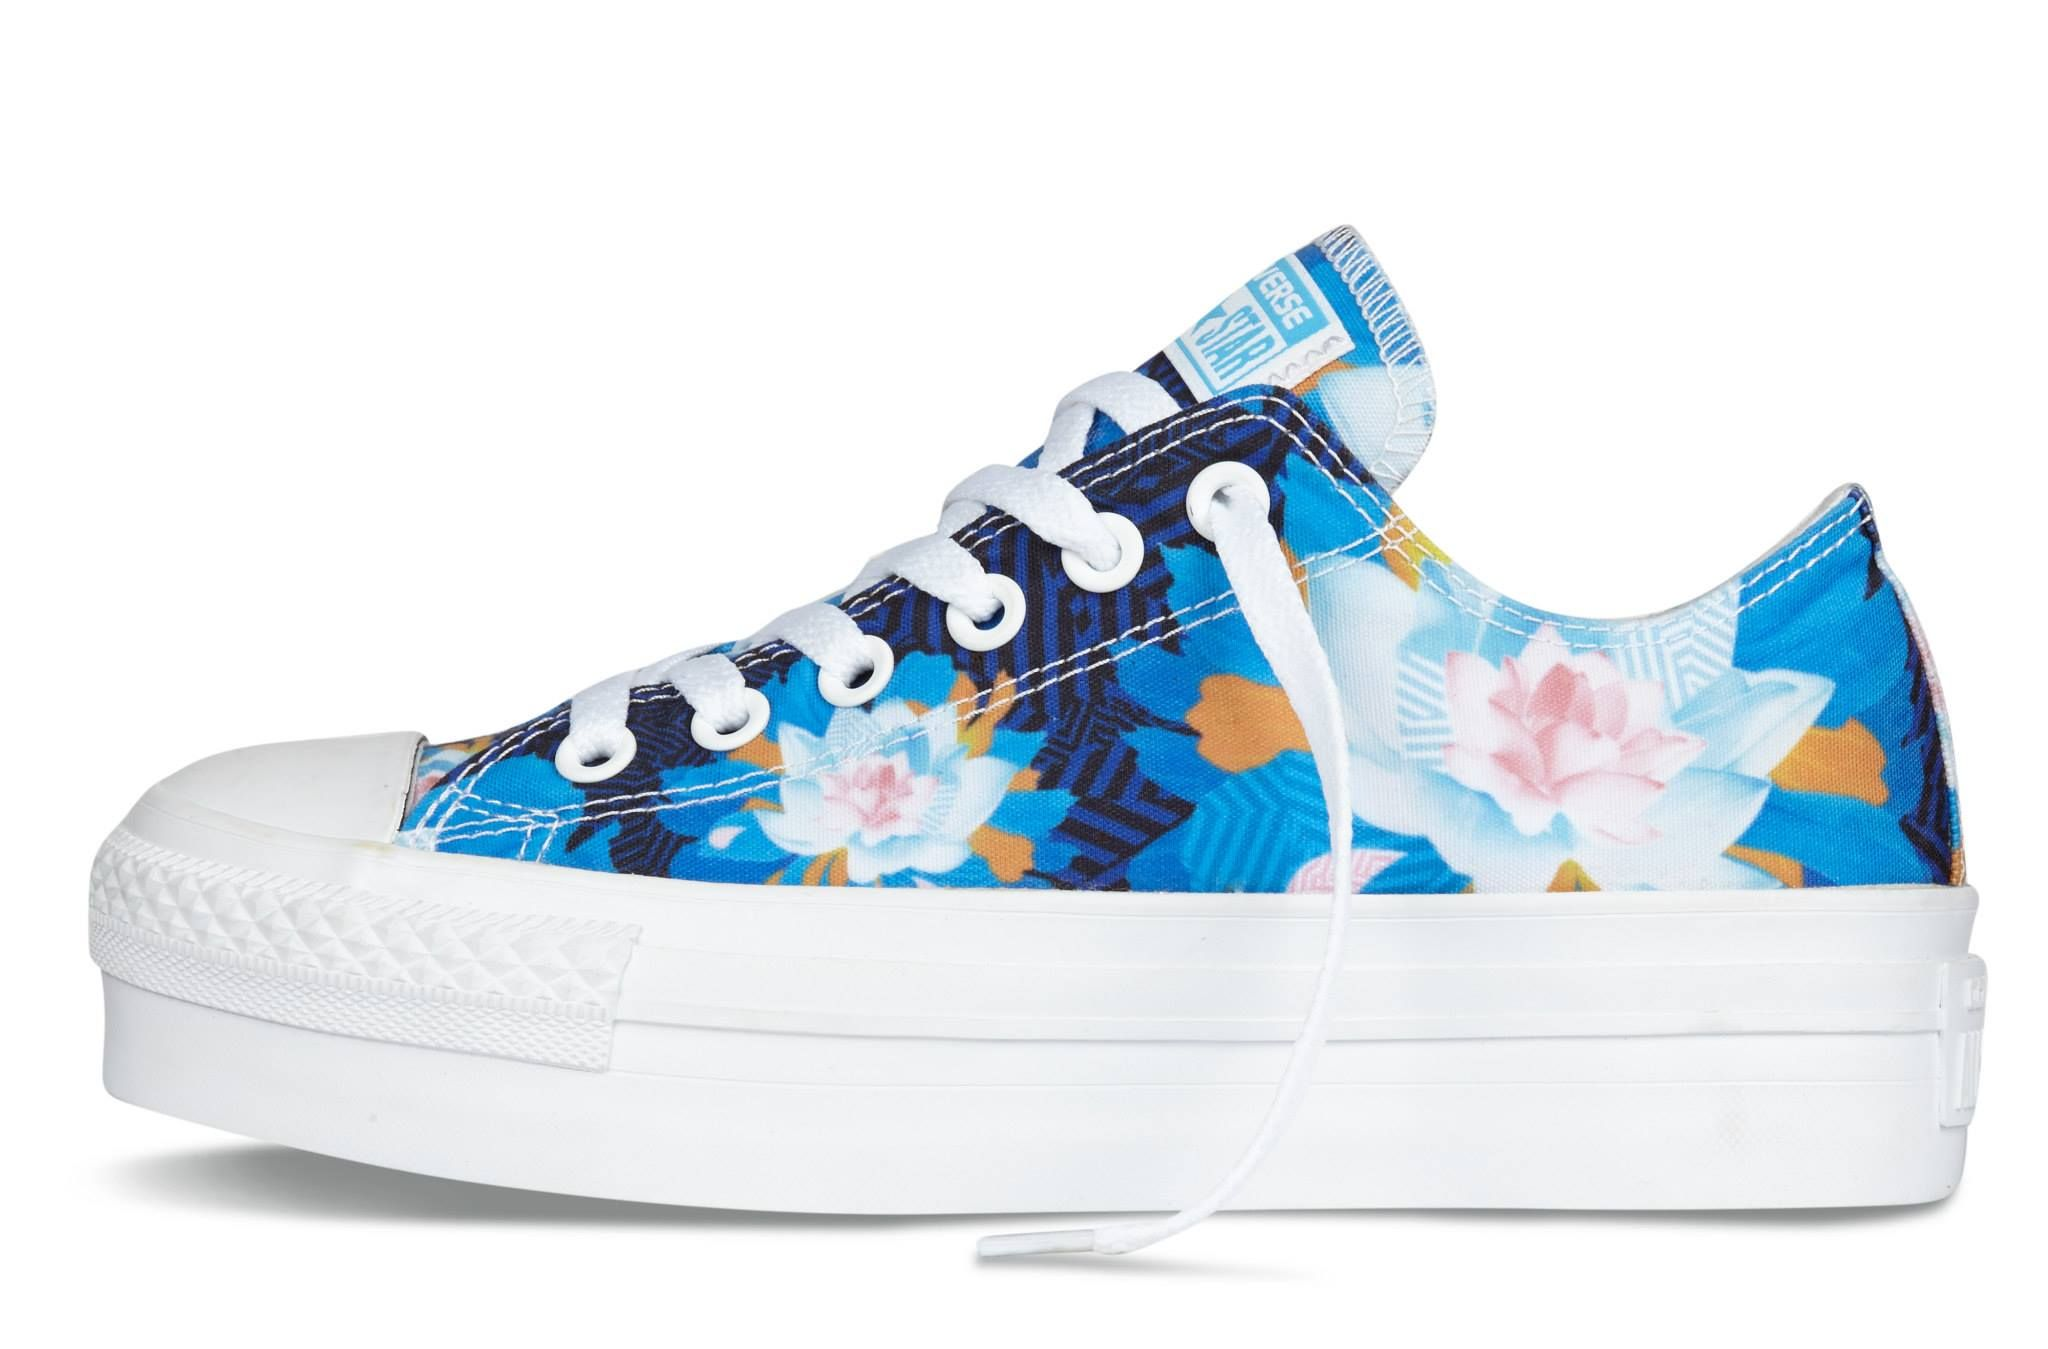 Converse Chuck Taylor All Star Floral Women s Low-Top Platform Sneaker  Malibu Blue 545340C 116e473ca